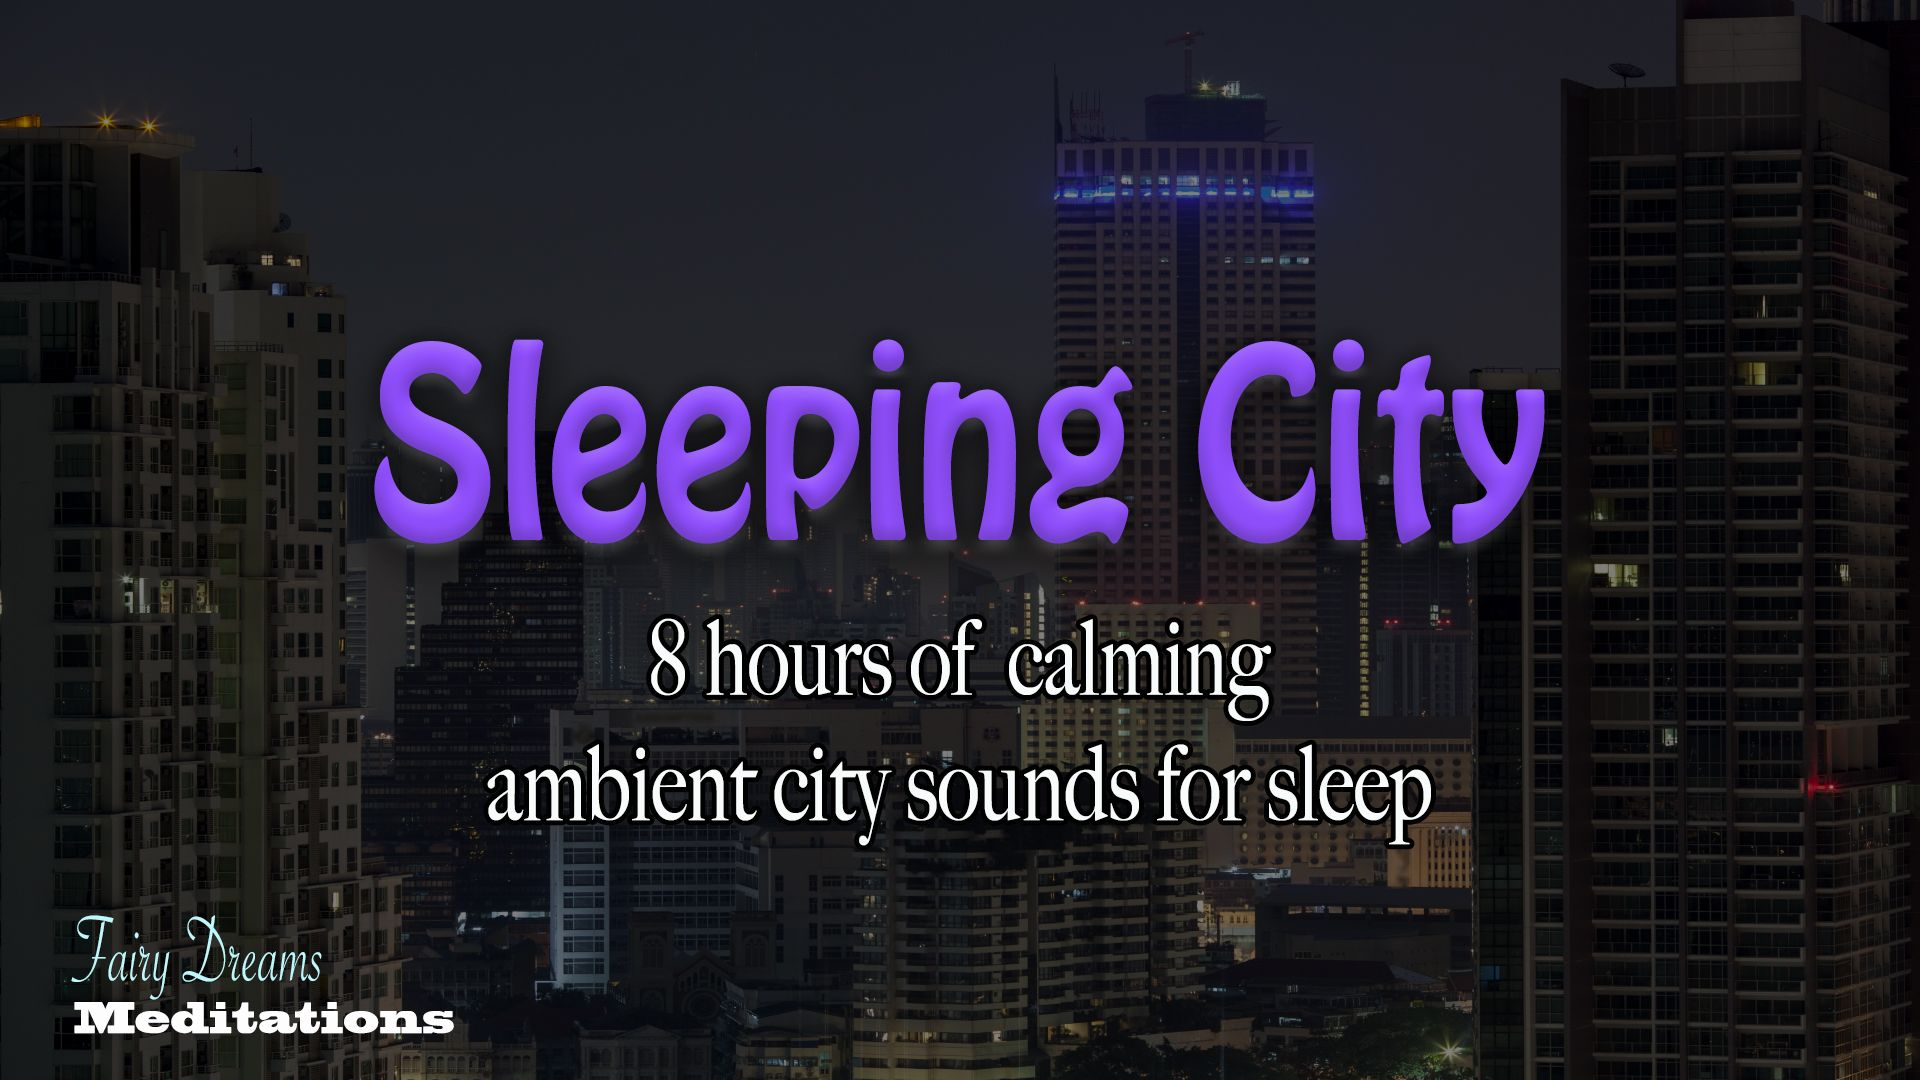 Dark Screen Ambient Sounds Of The City At Night Distant Noises And The White Noise Of Roof Top Fans Help You Eas Sleep City Nature Meditation Sleep Meditation